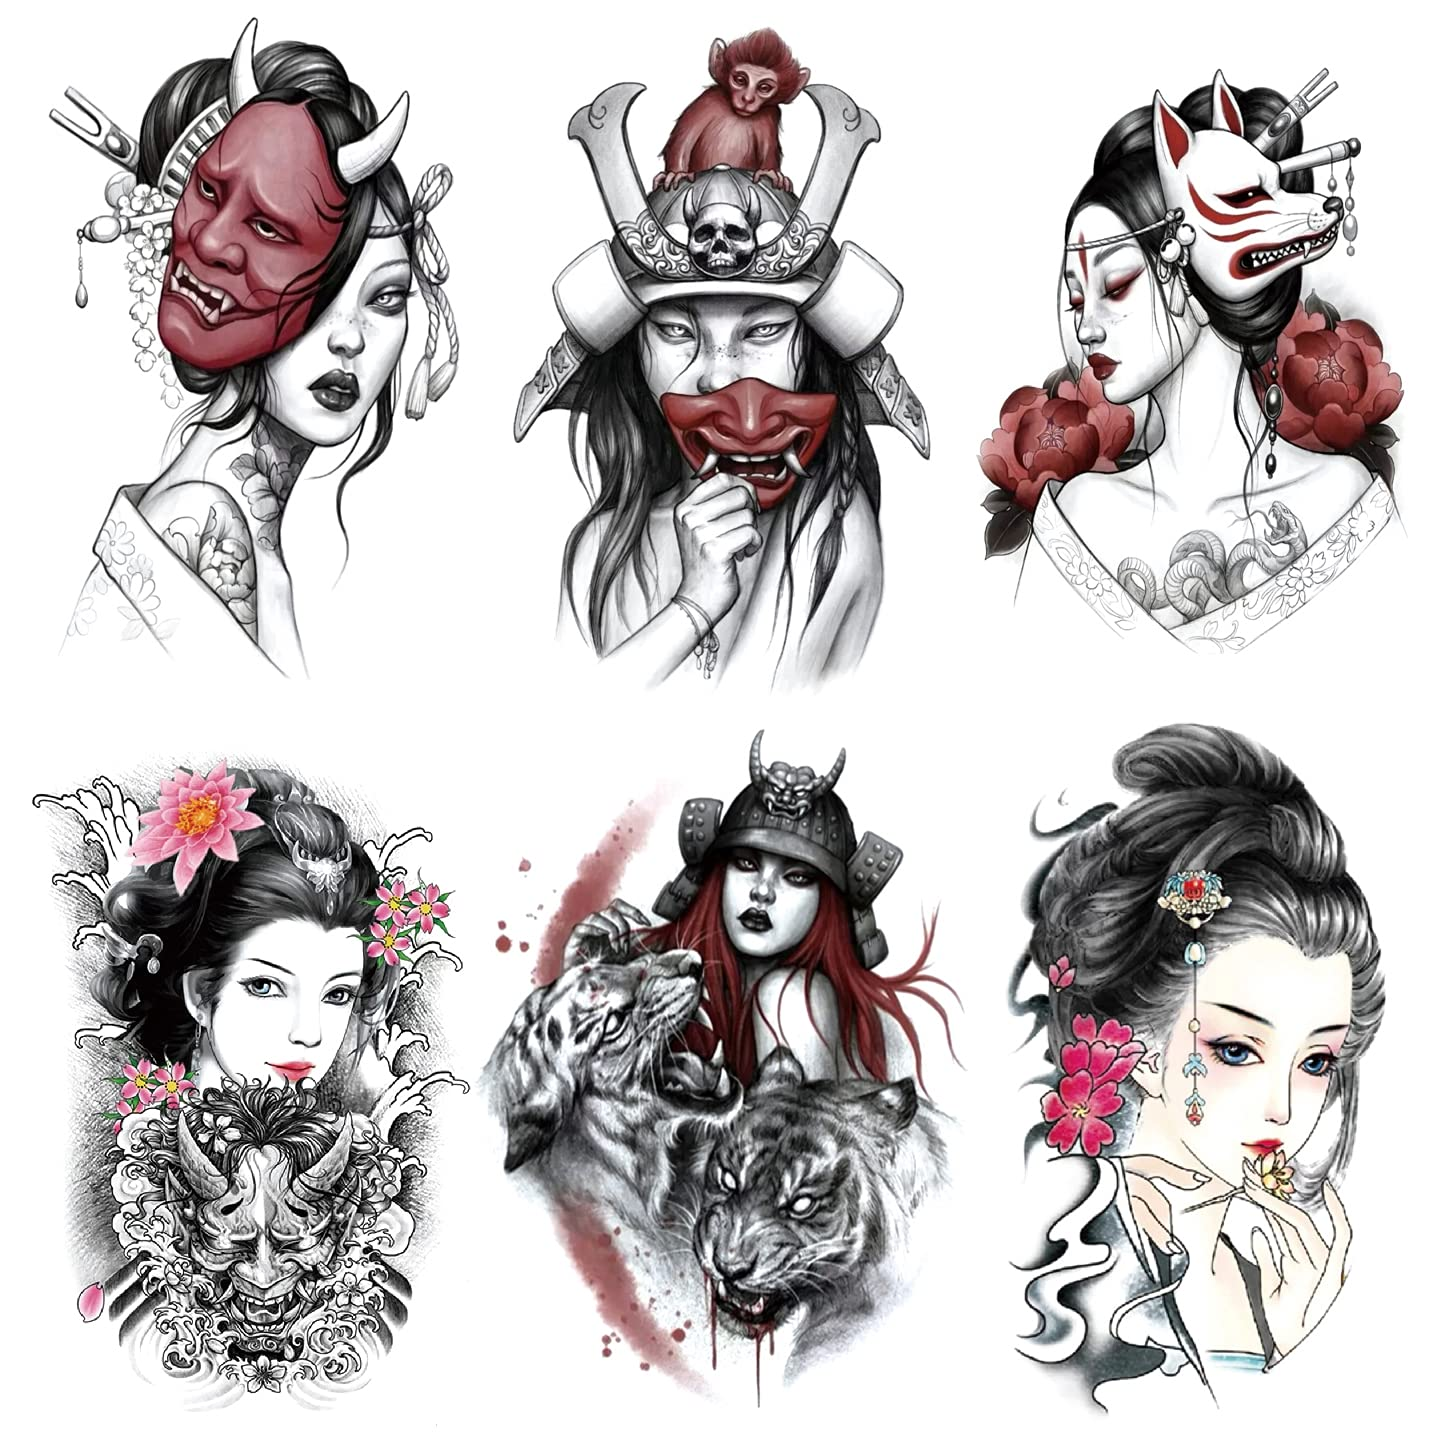 Free shipping on posting reviews Oottati 6 Sheets In a popularity Arm Fake Temporary Tattoos Stickers Waterproof